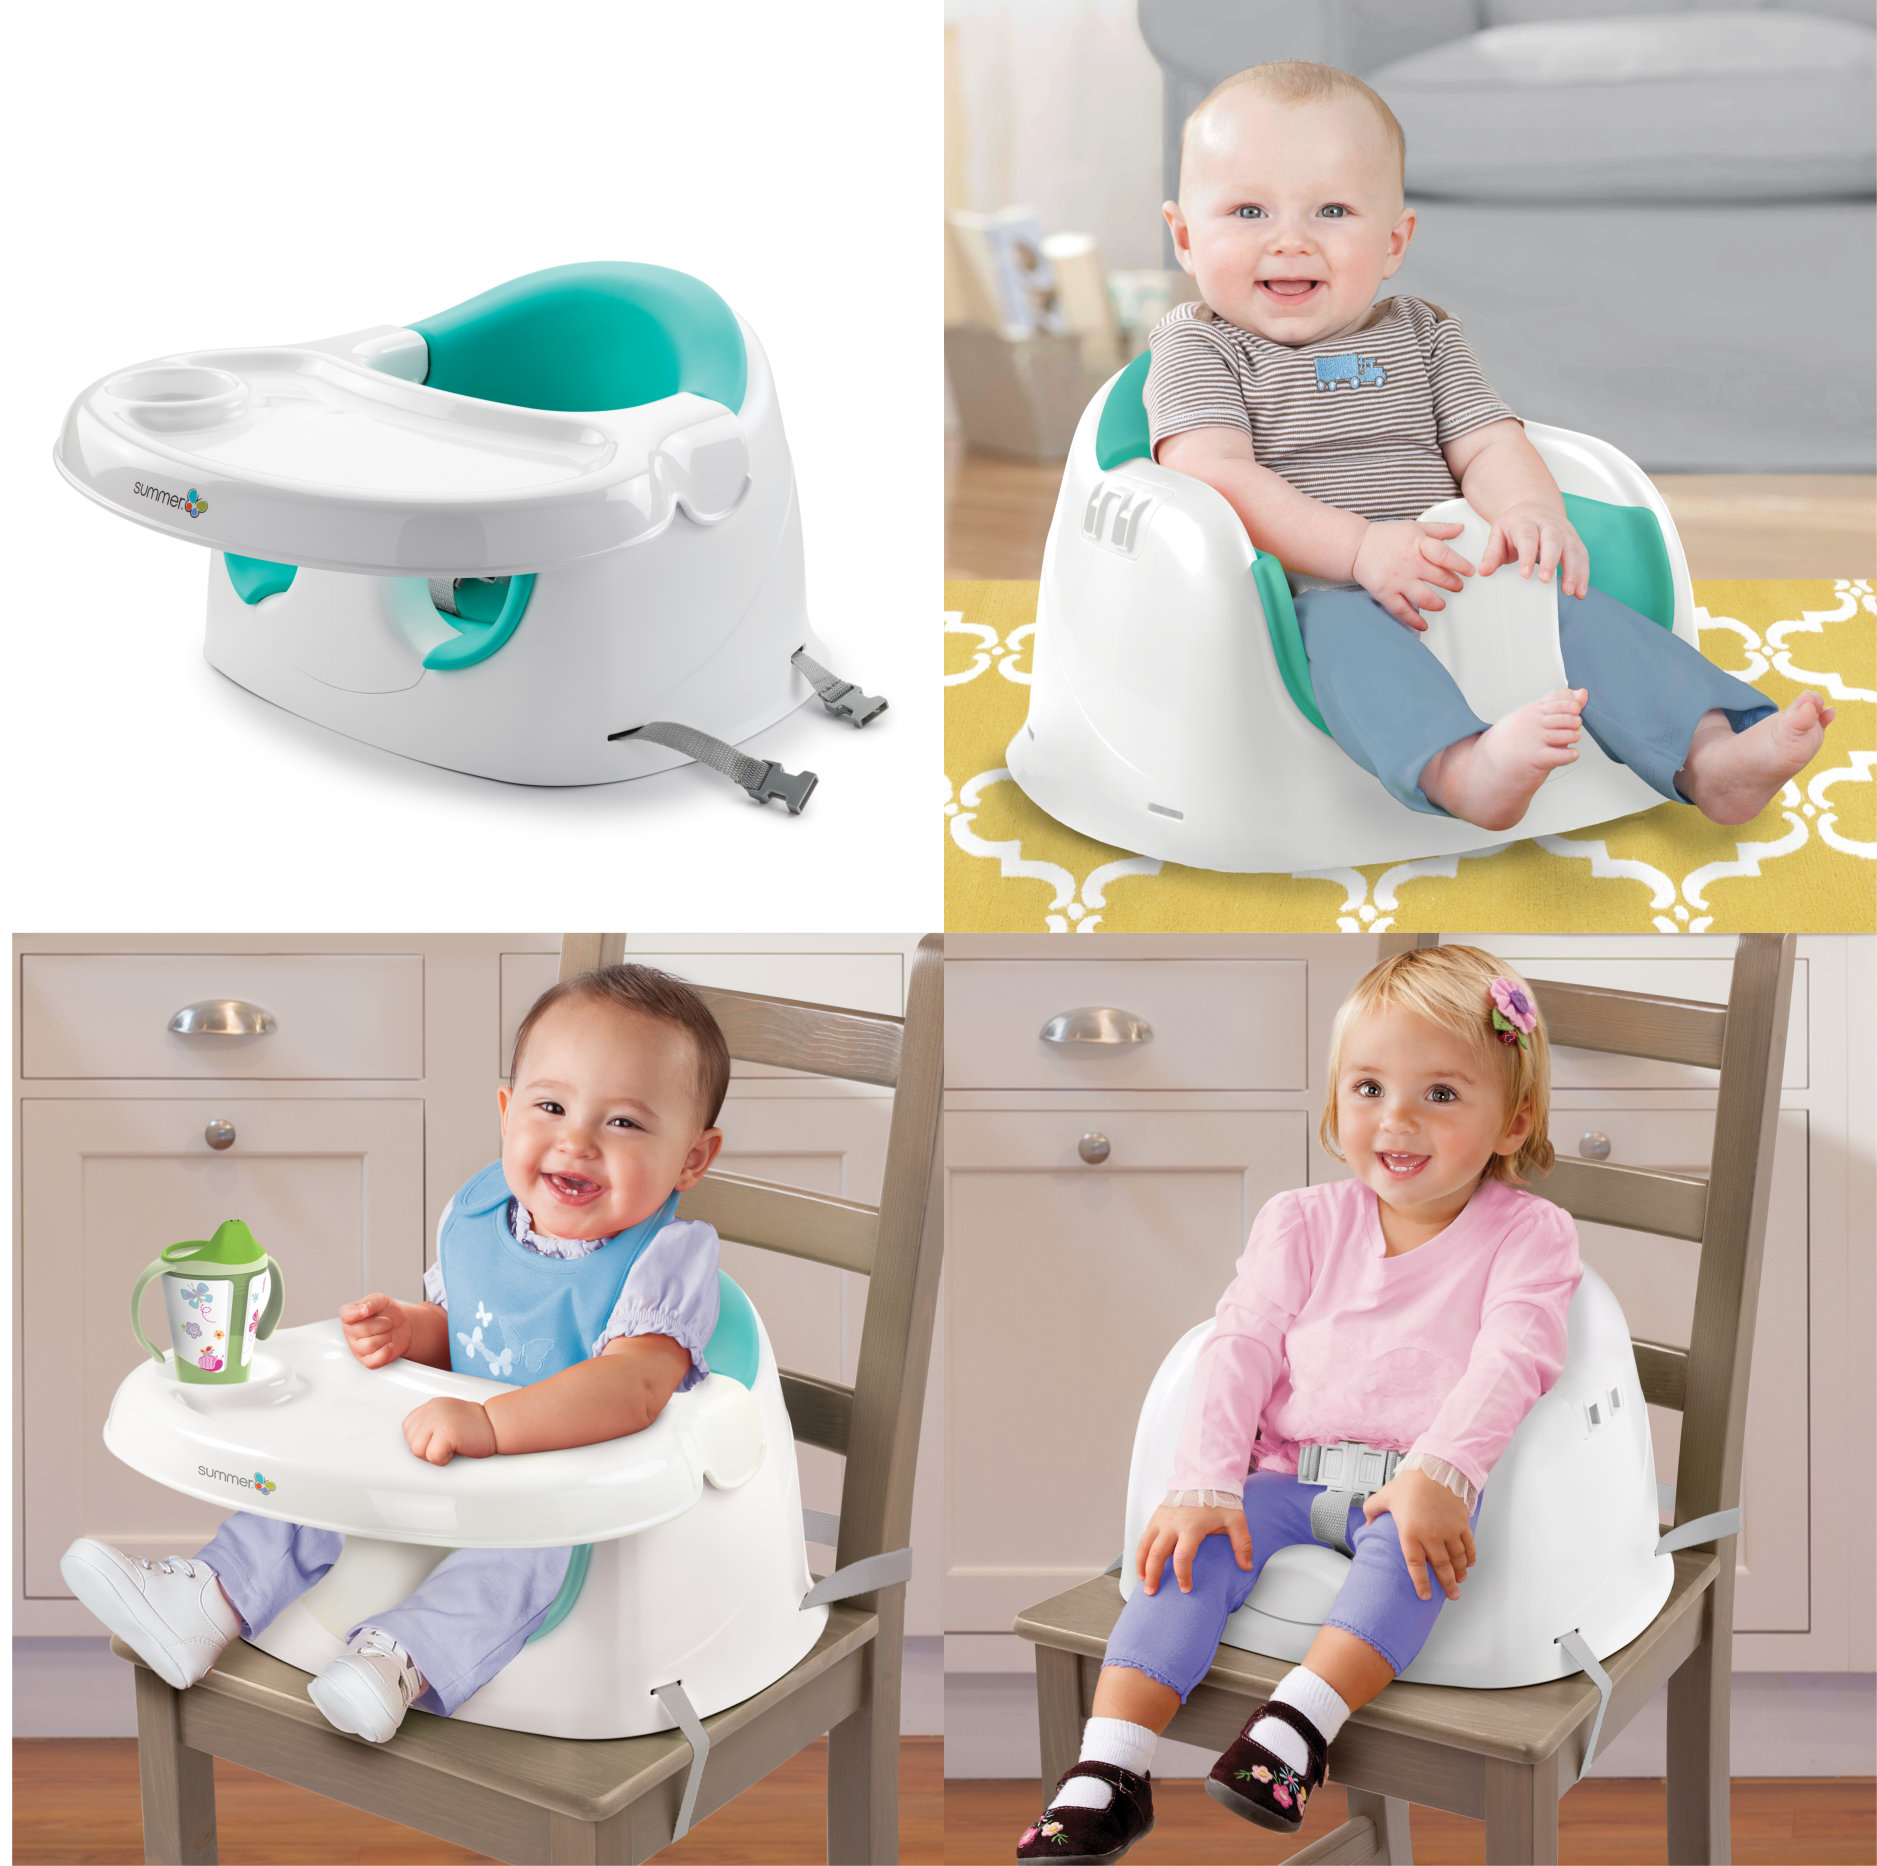 3 in 1 Support Me Seat from Summer Infant